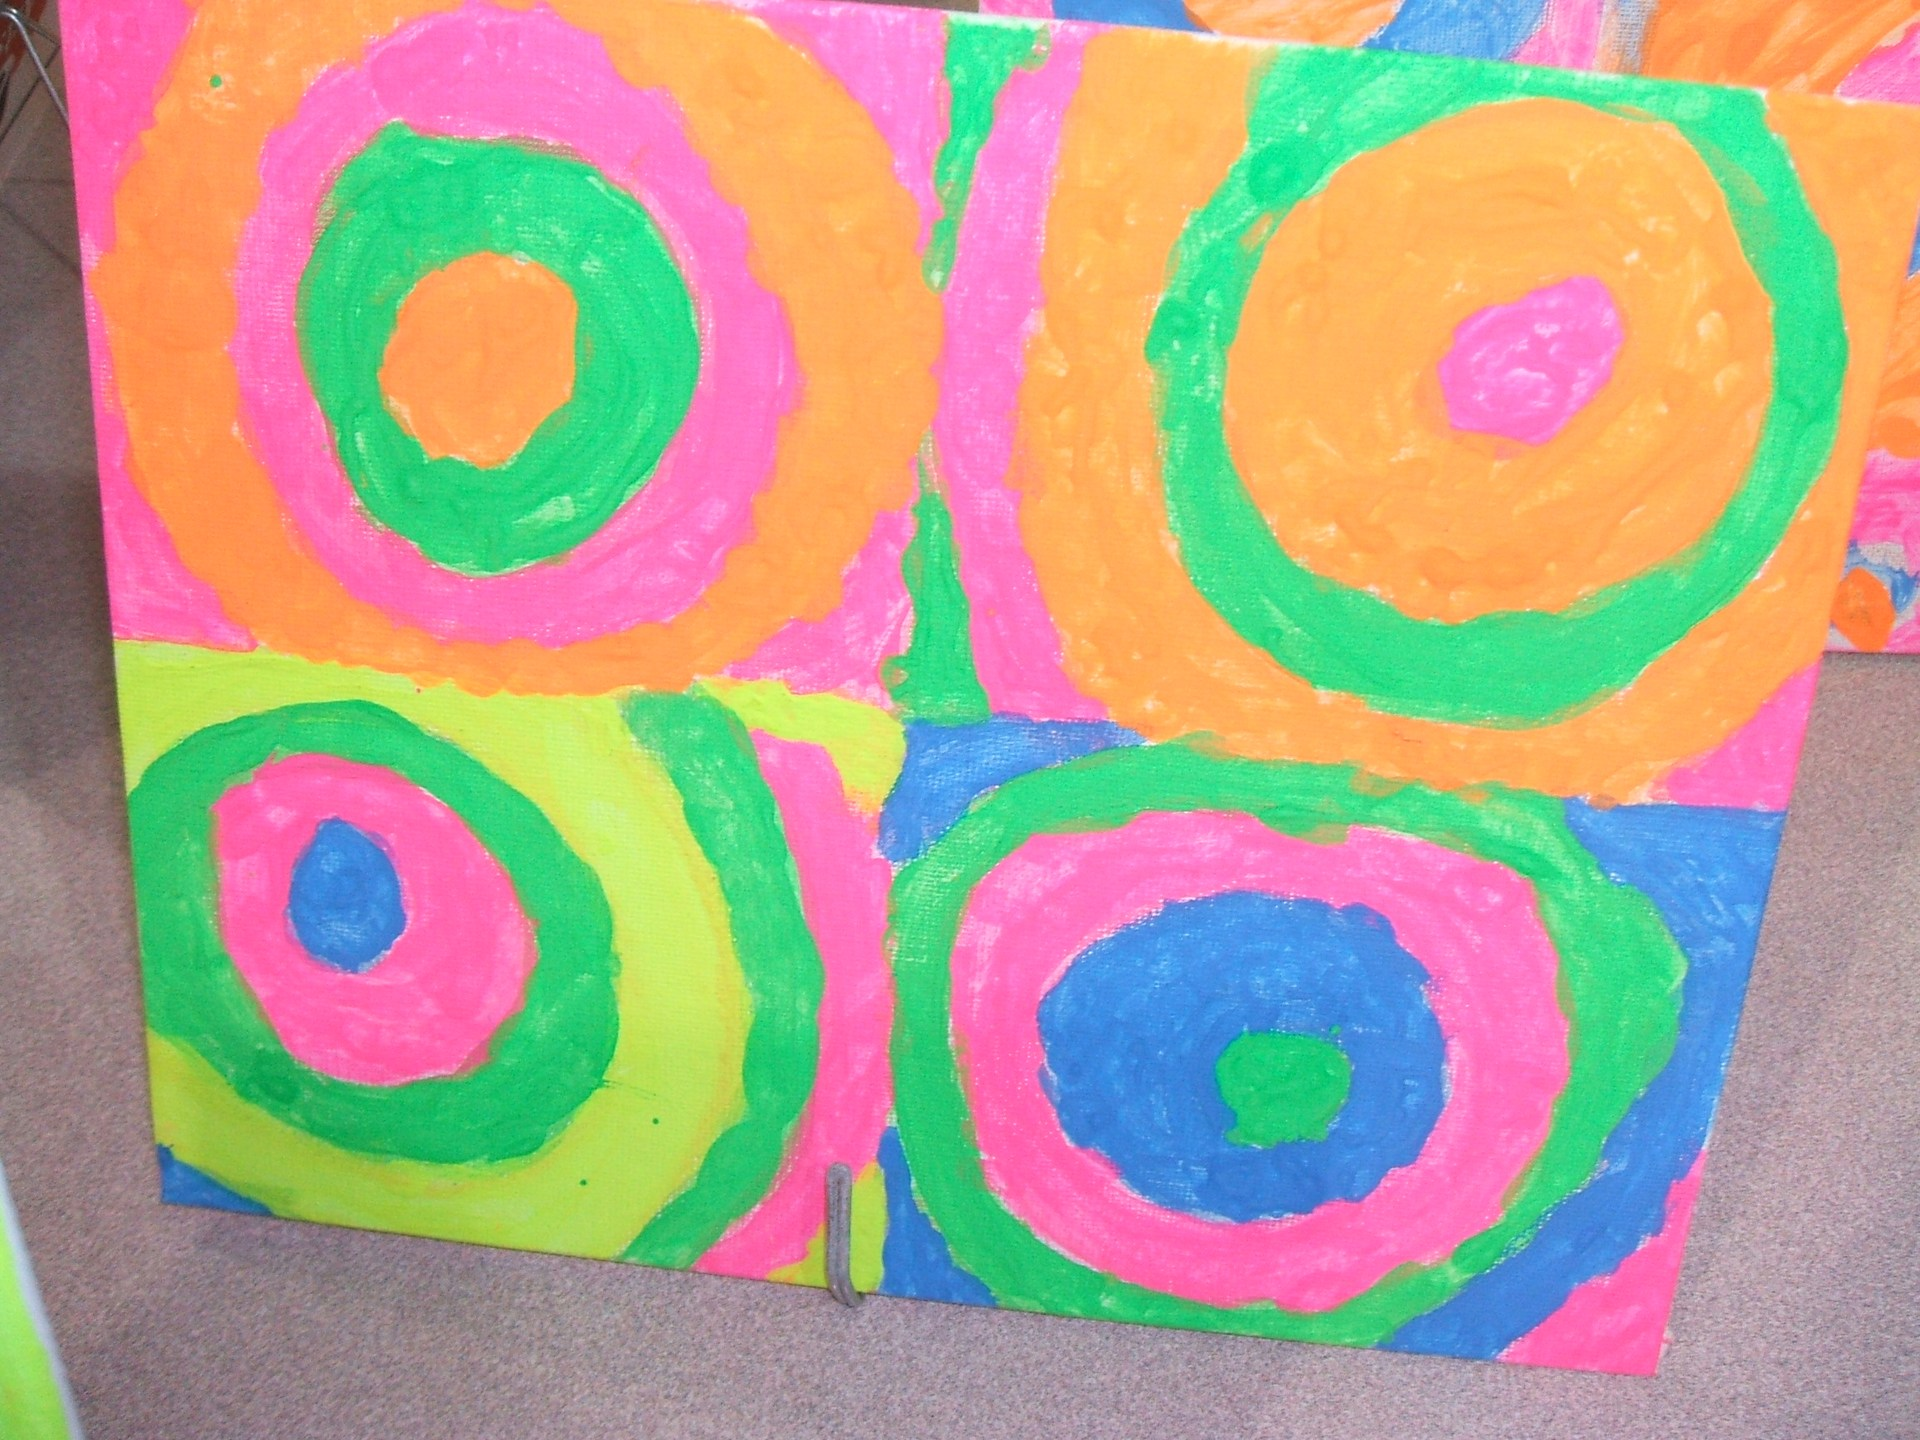 3rd grade paintings based on the work of Wassily Kandinsky